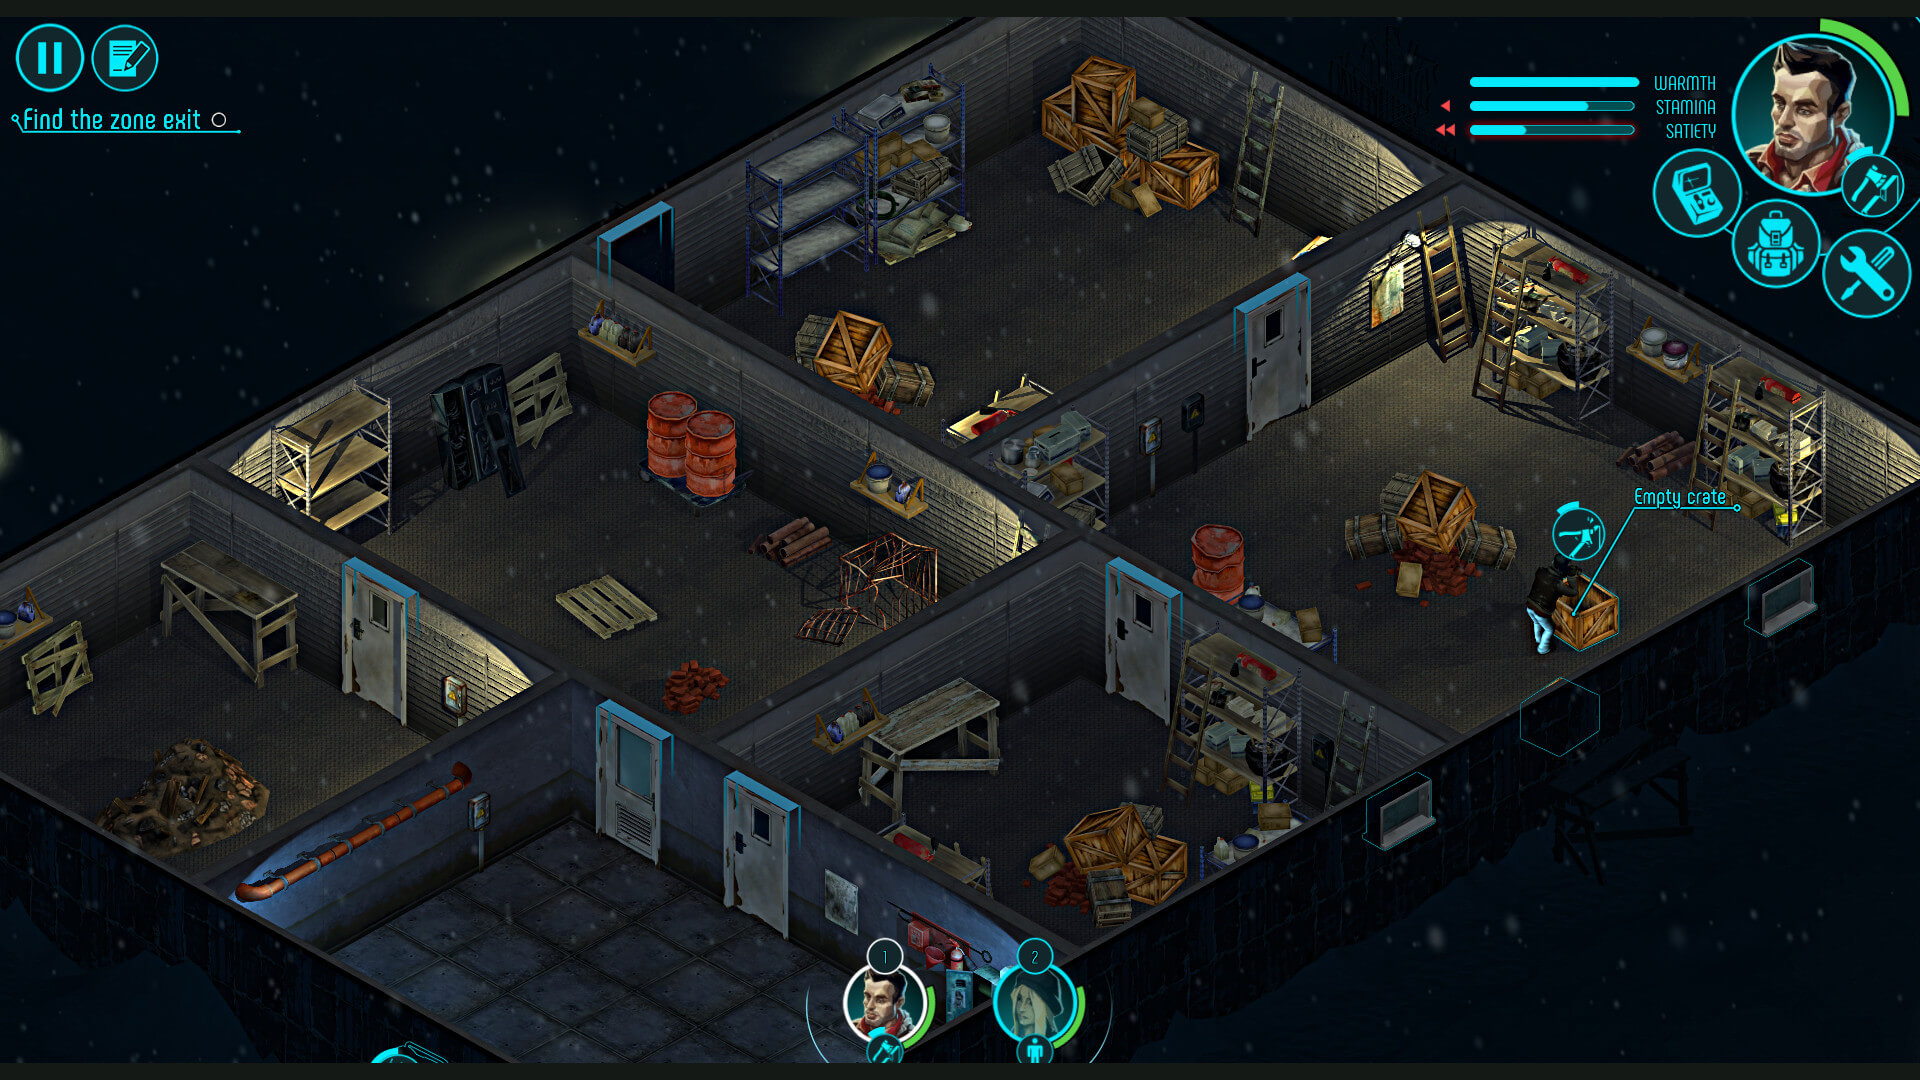 distrust5 1 - The Thing-Inspired Game Distrust Gets a Demo